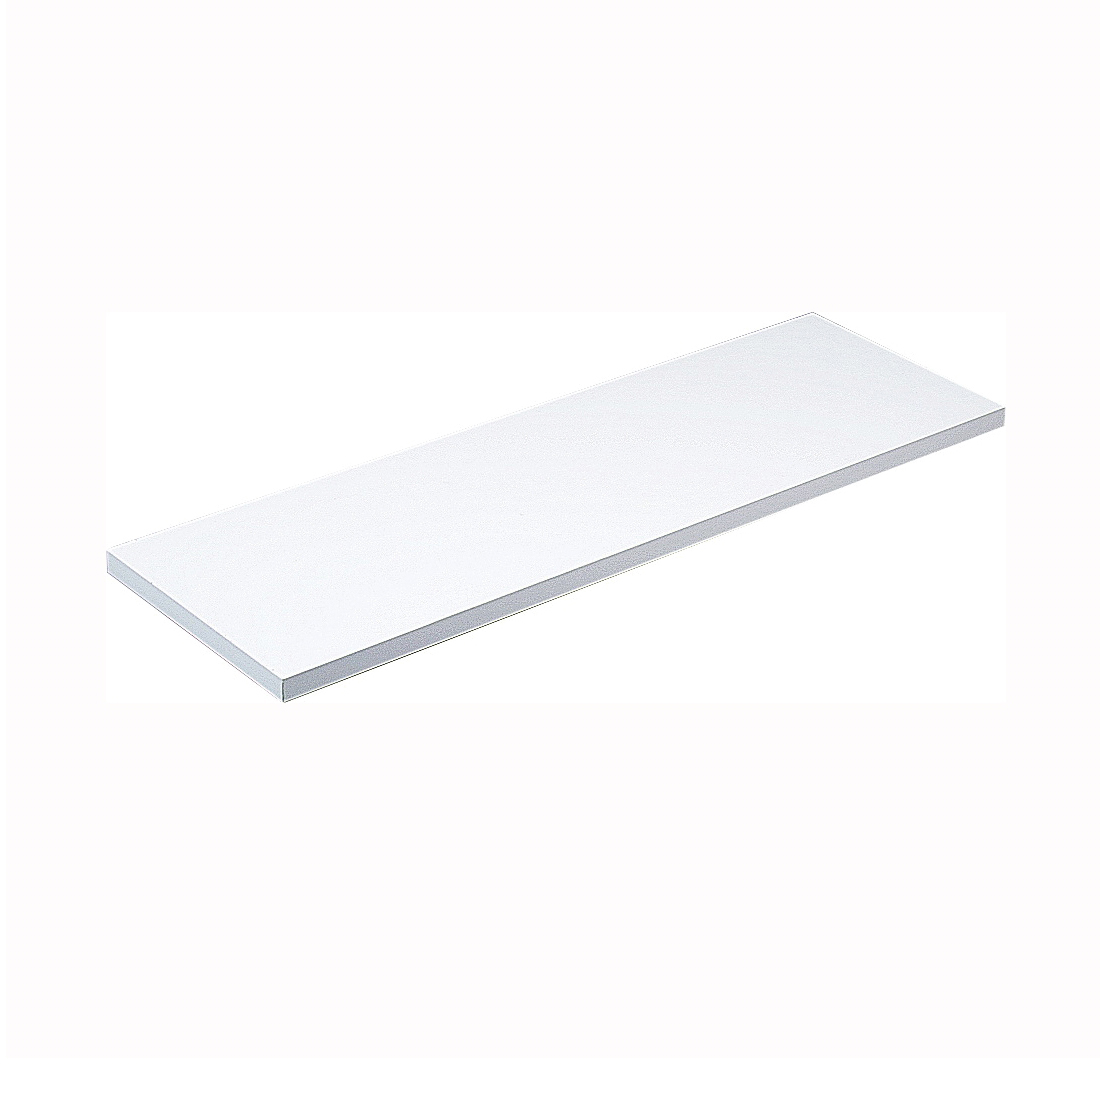 Picture of Knape & Vogt 1980 WH 12X48 Shelf Board, 200 lb, 5-Shelf, 48 in L, 12 in W, Particleboard